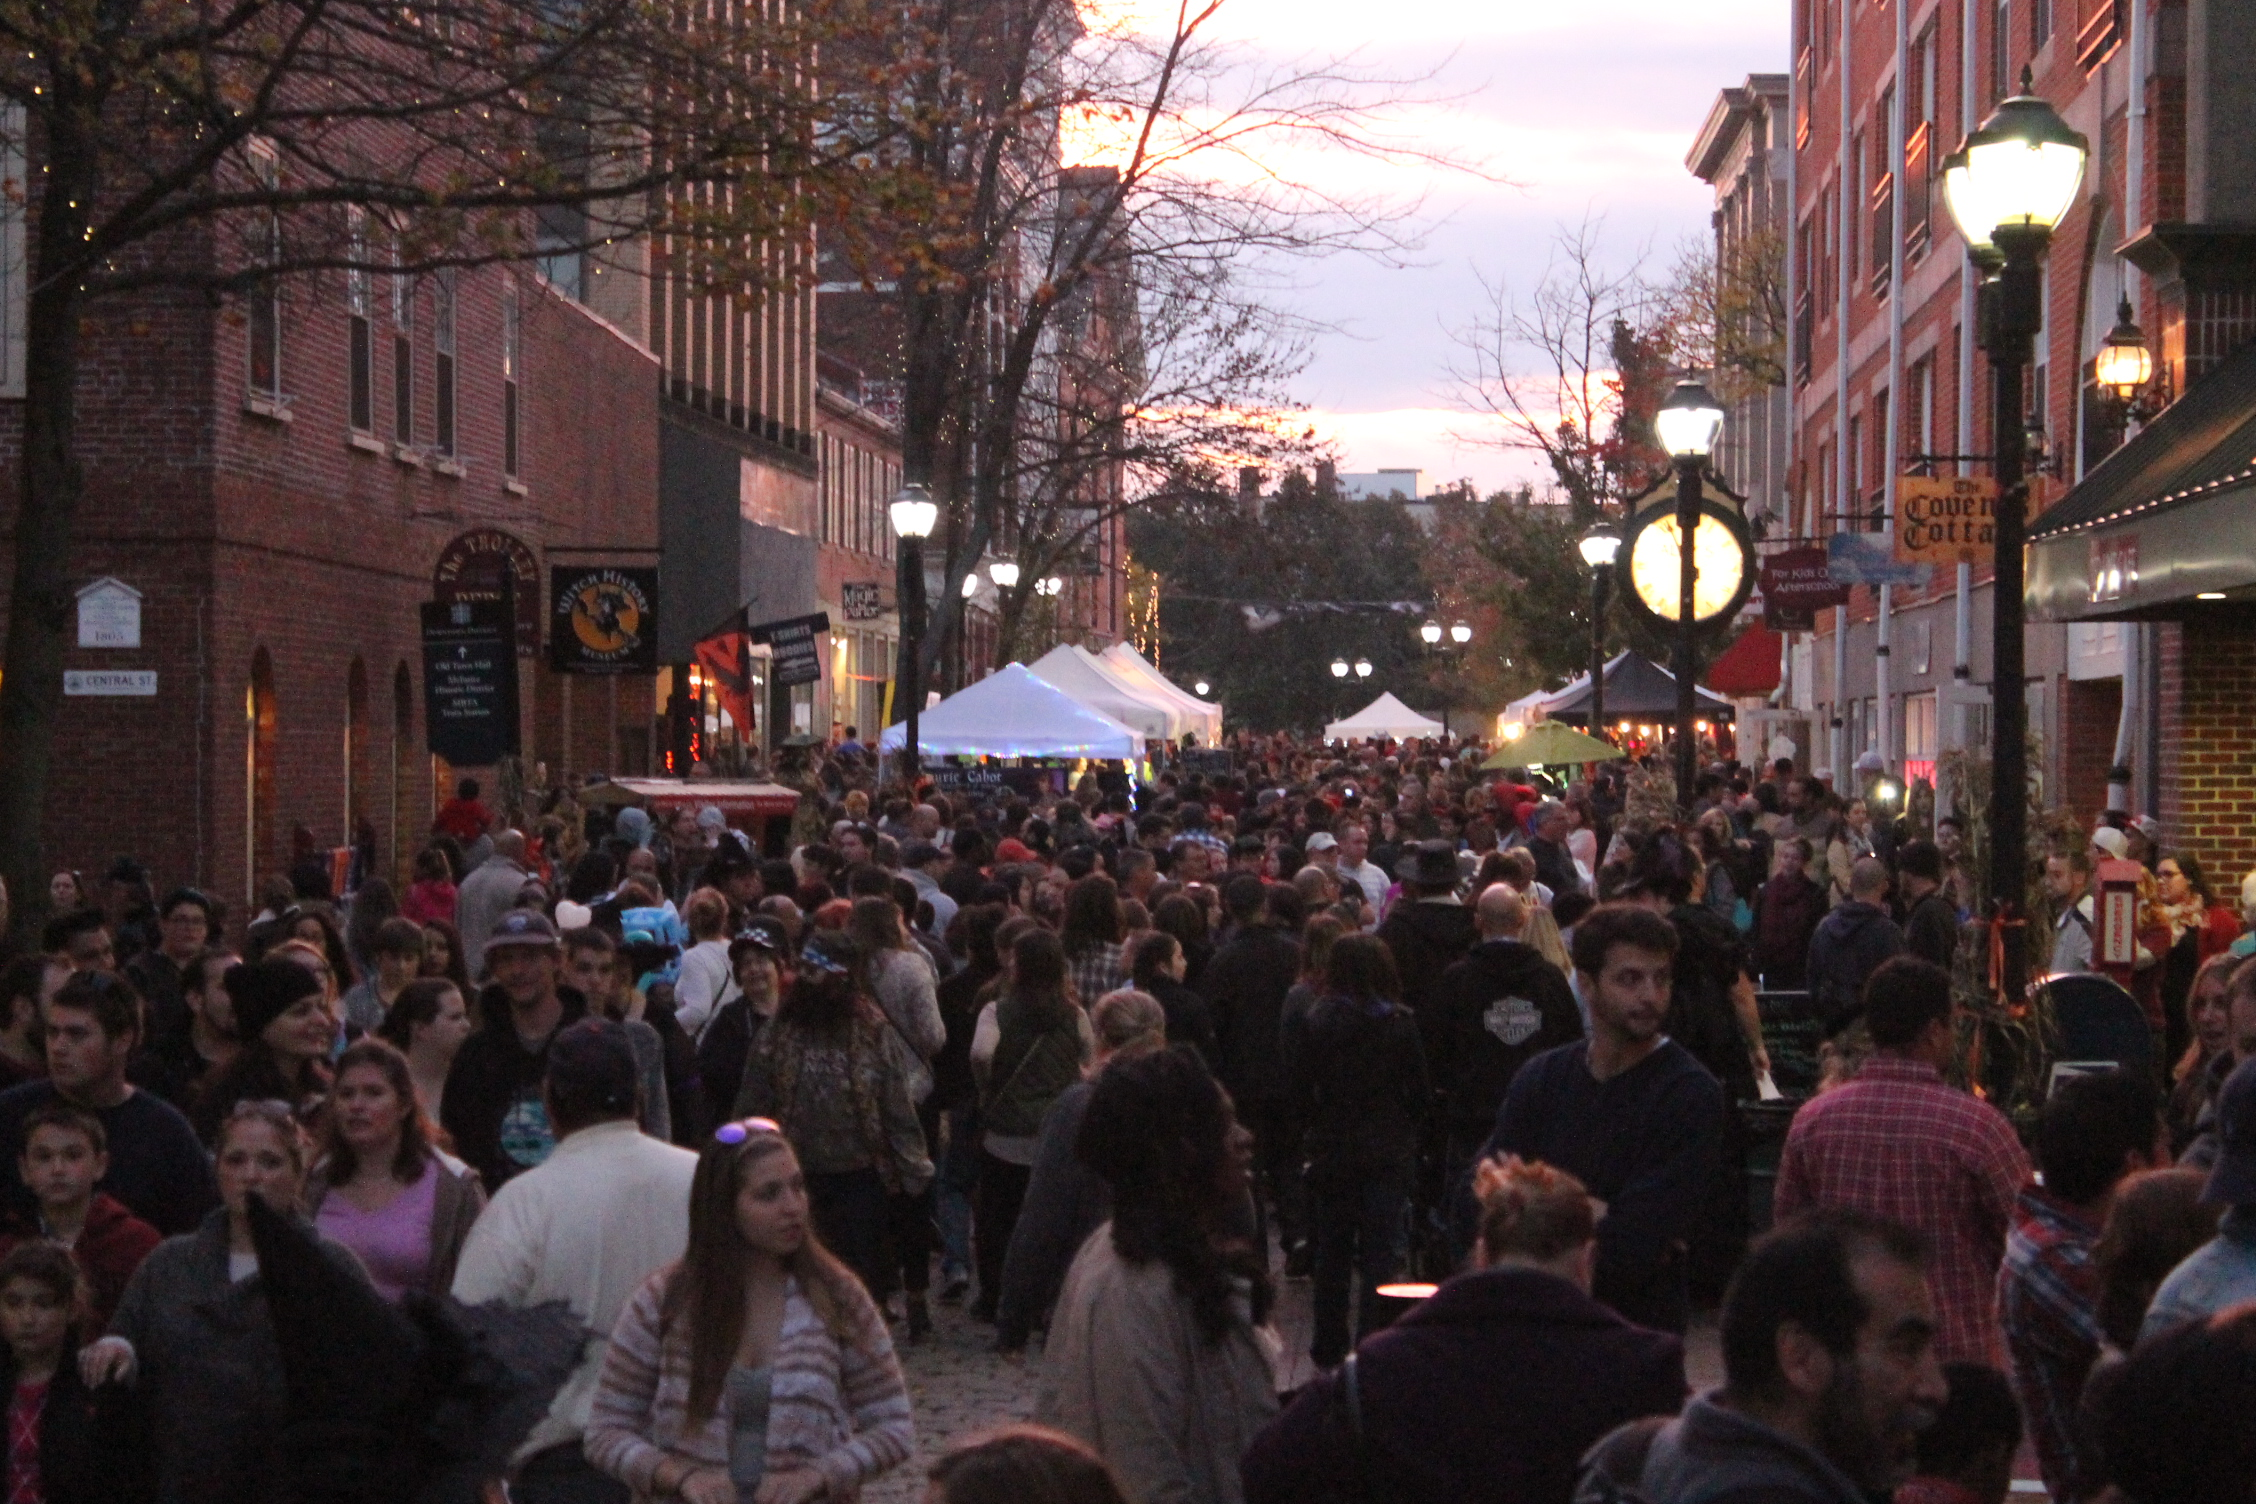 Crowds in Pedestrian Mall